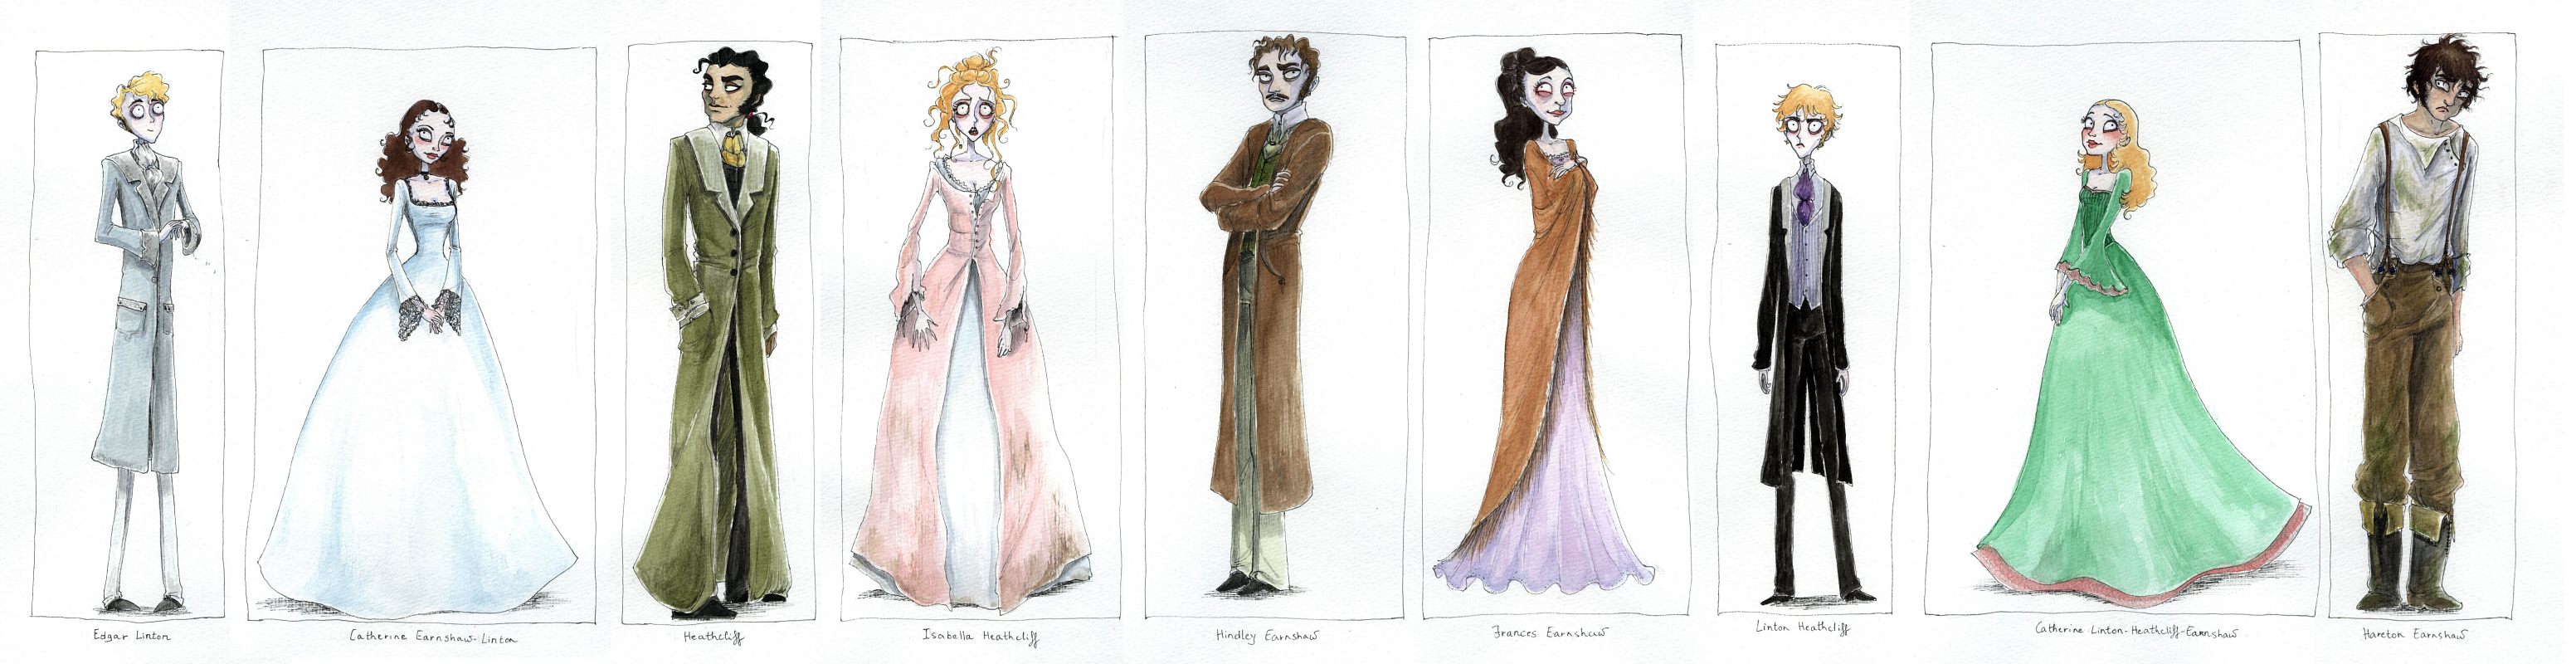 wuthering heights characters by gerre on  wuthering heights characters by gerre wuthering heights characters by gerre